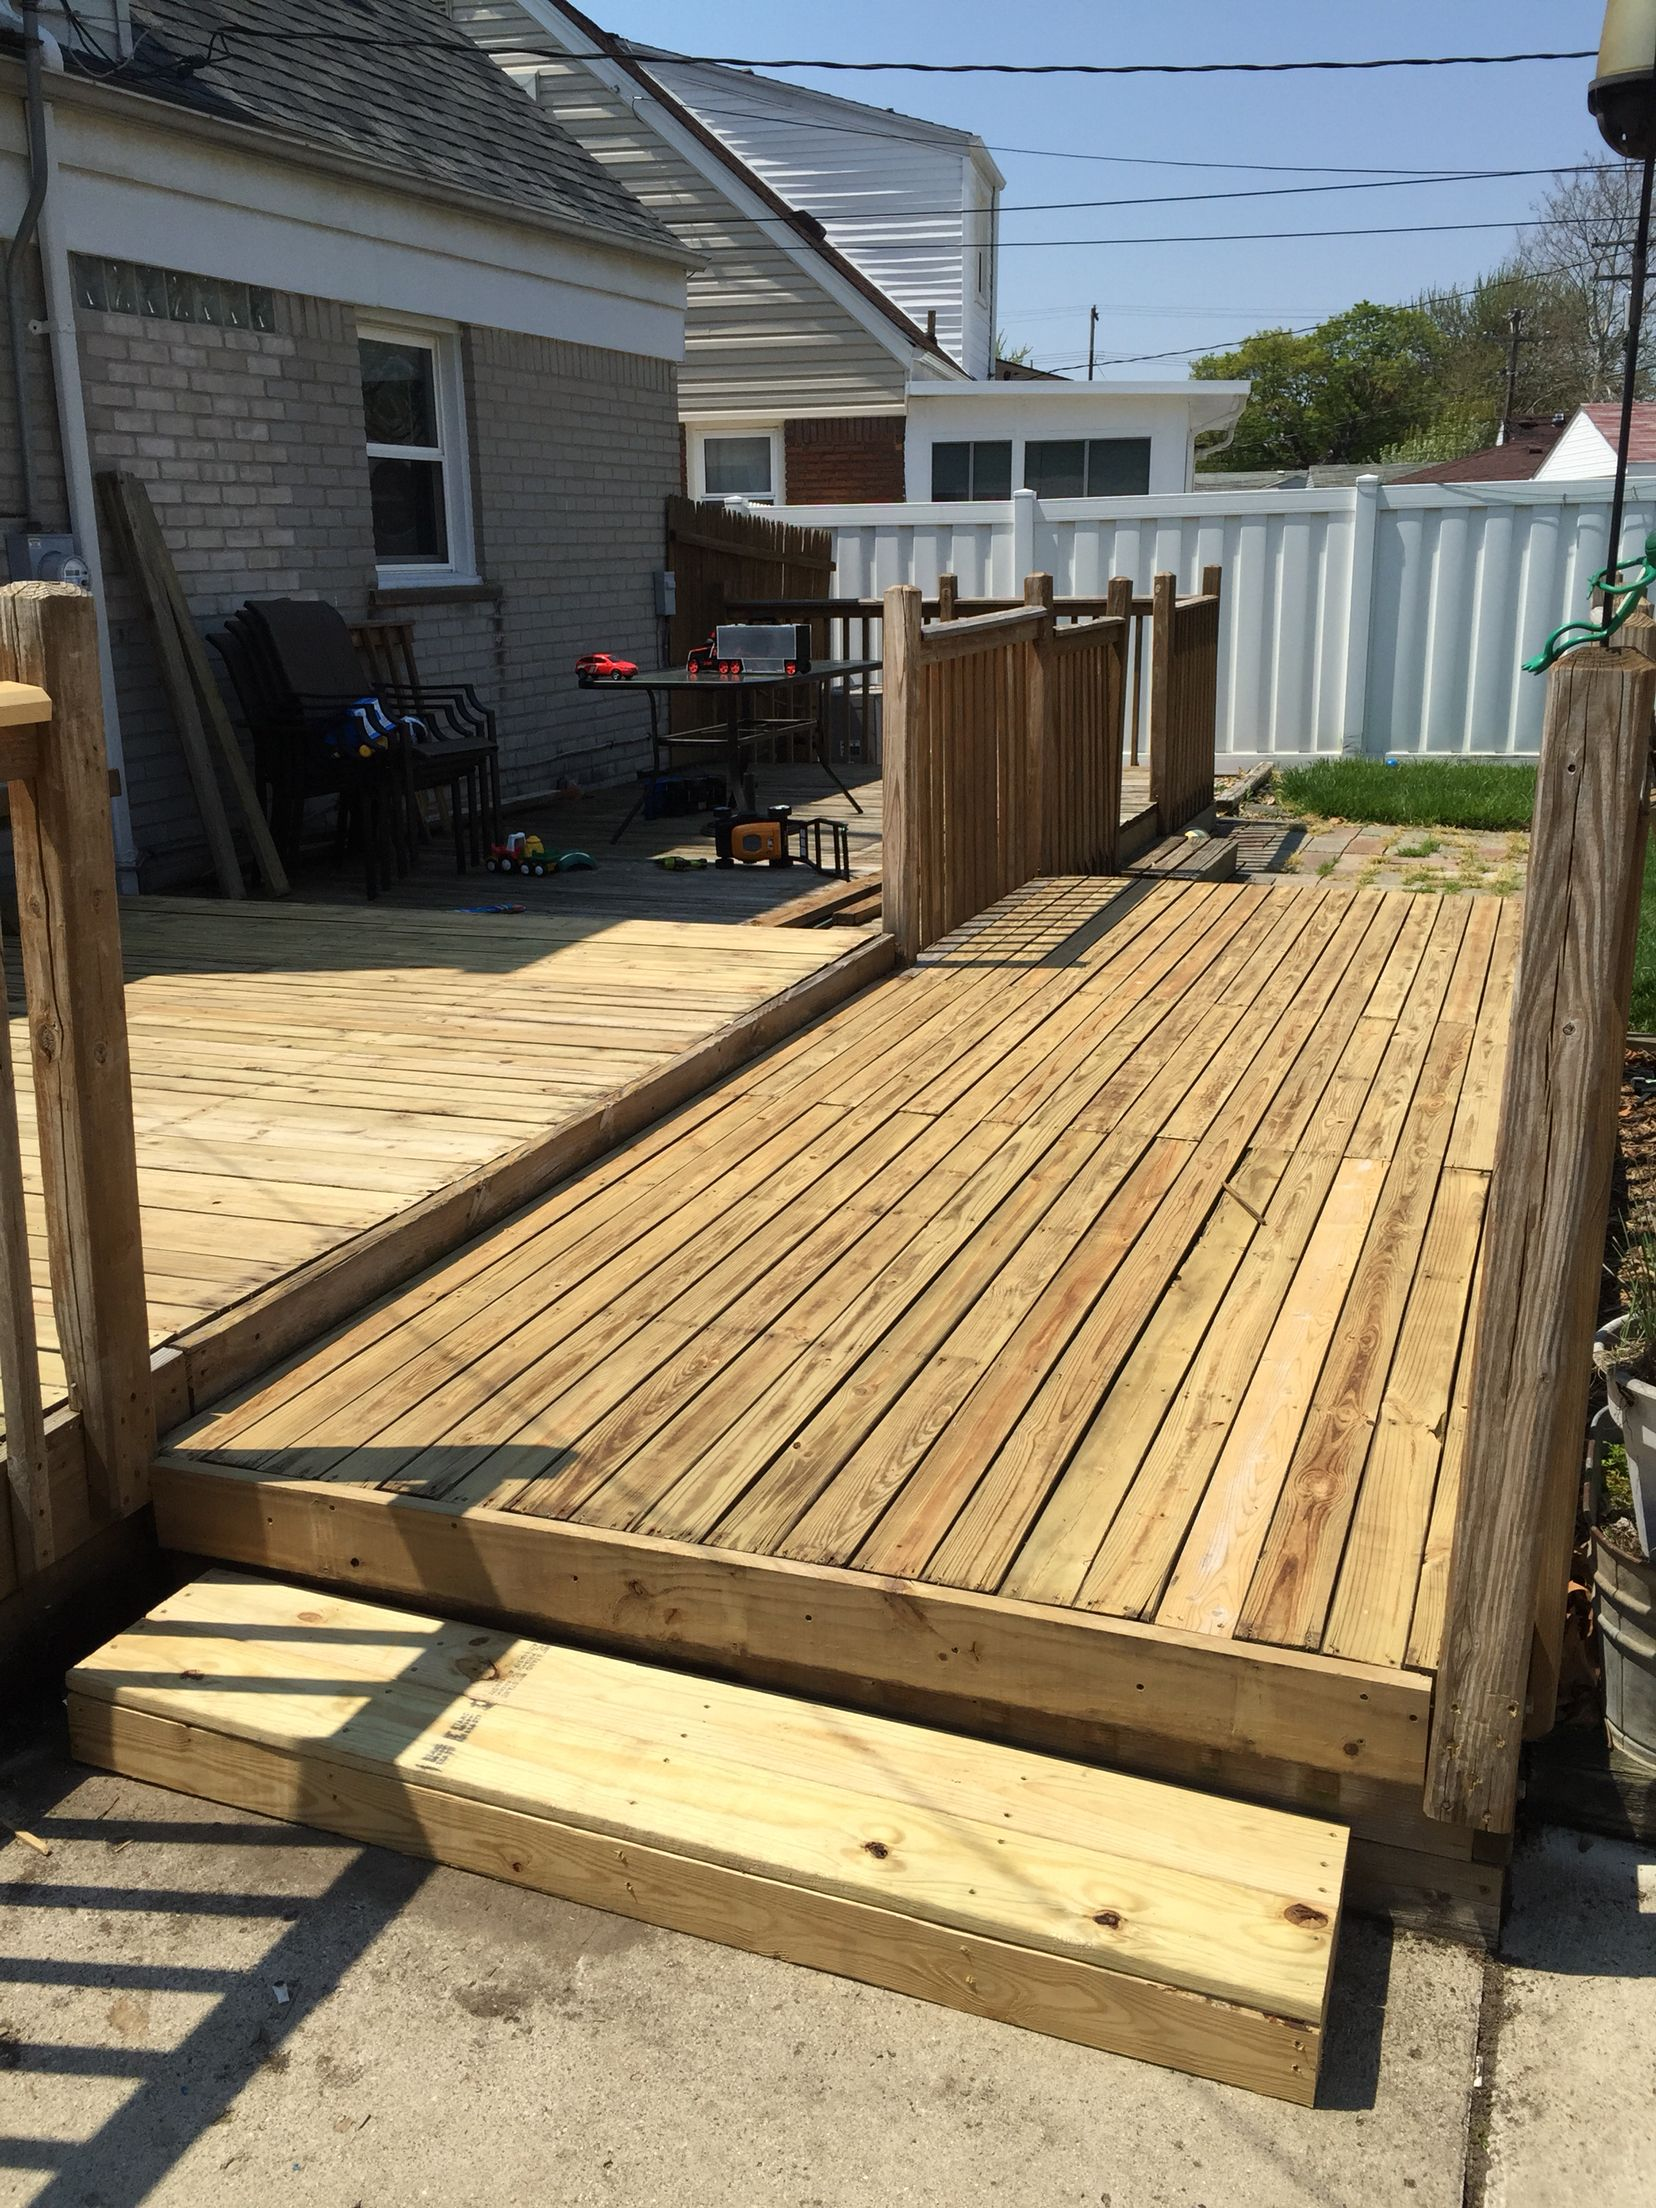 Flipping board and sanding deck paint new deck outdoor